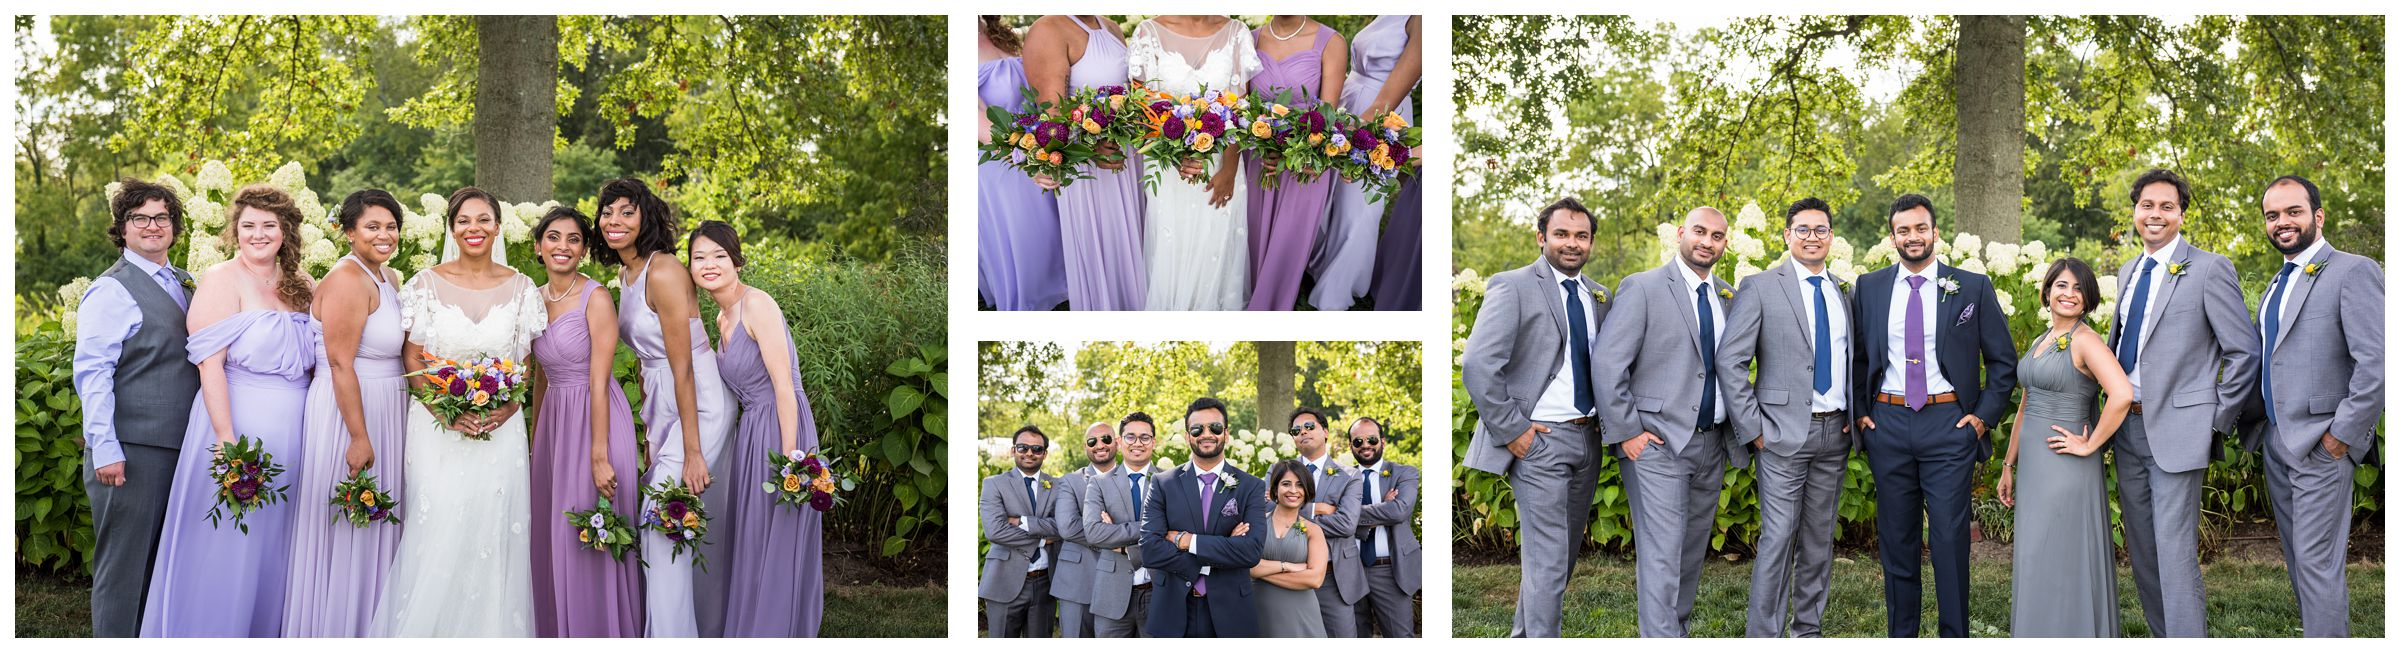 Diverse co-ed mixed gender wedding party with groomswoman and bridesman wearing sunglasses and holding purple and gold bouquets